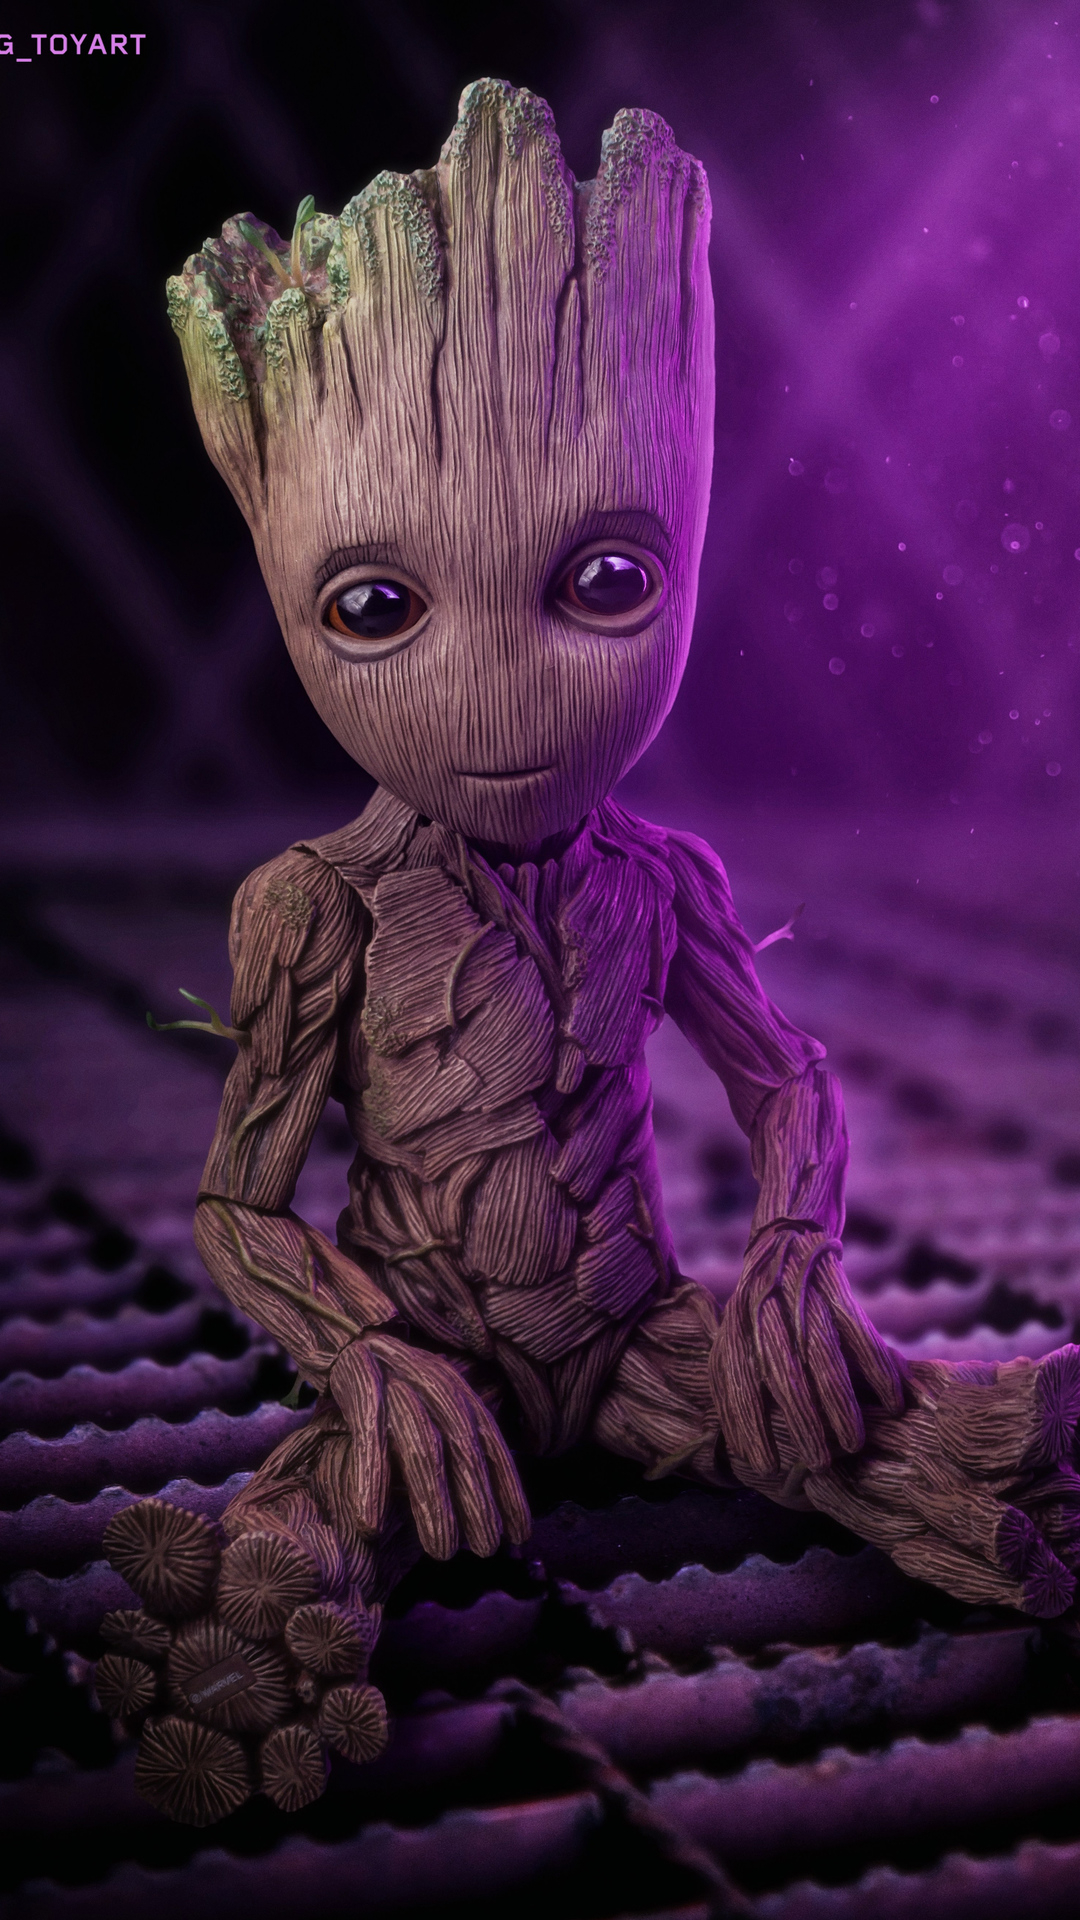 Groot And Baby Groot Wallpapers - Wallpaper Cave